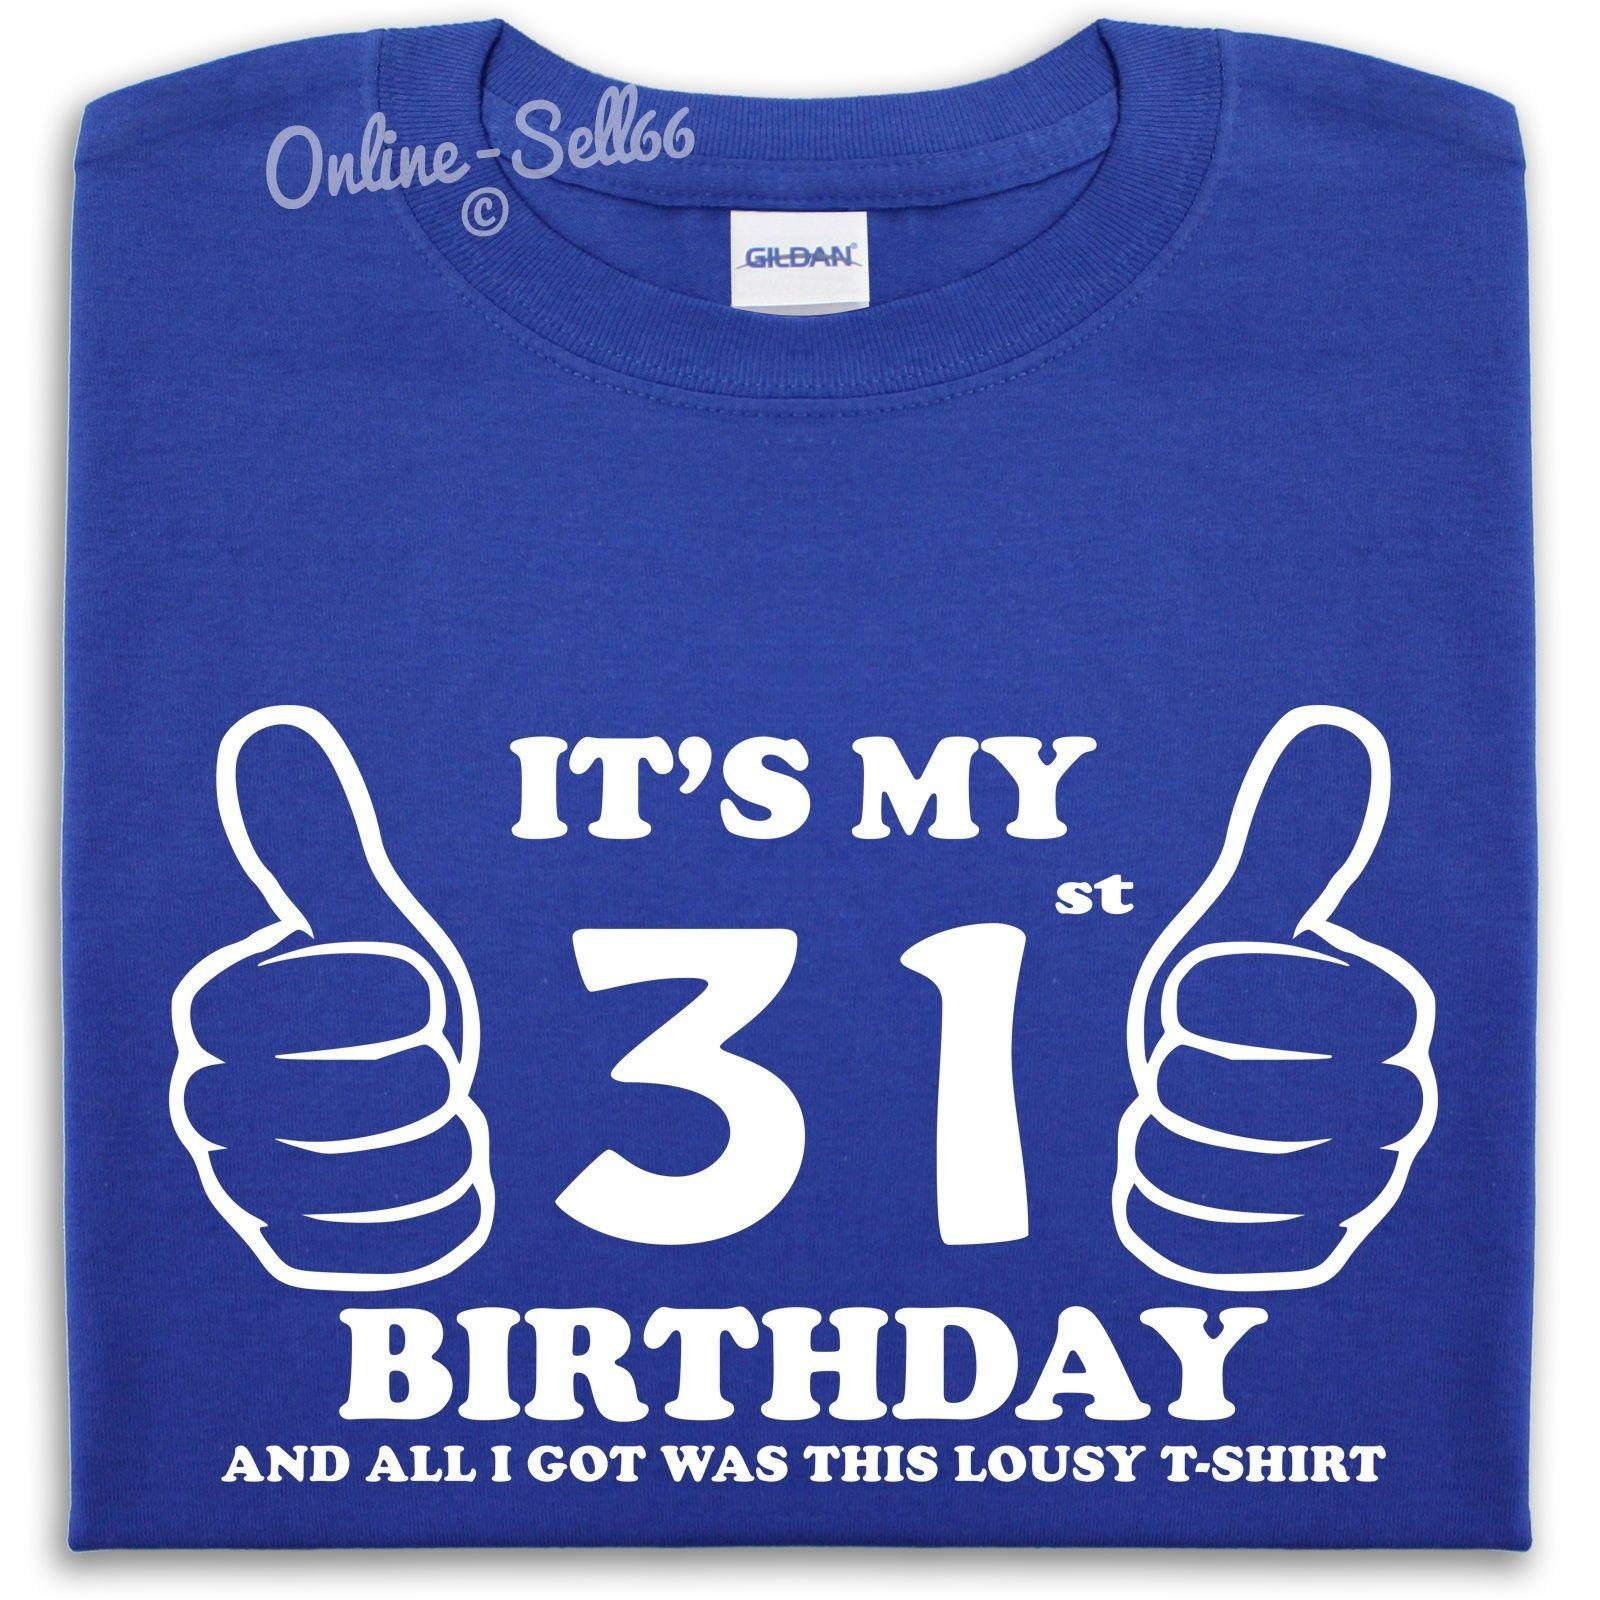 TS My 31st Birthday Lousy T Shirt Awesome Gift Present Idea Mens Womens Cool Casual Pride Men Unisex New Fashion Tshirt The Coolest Shirts